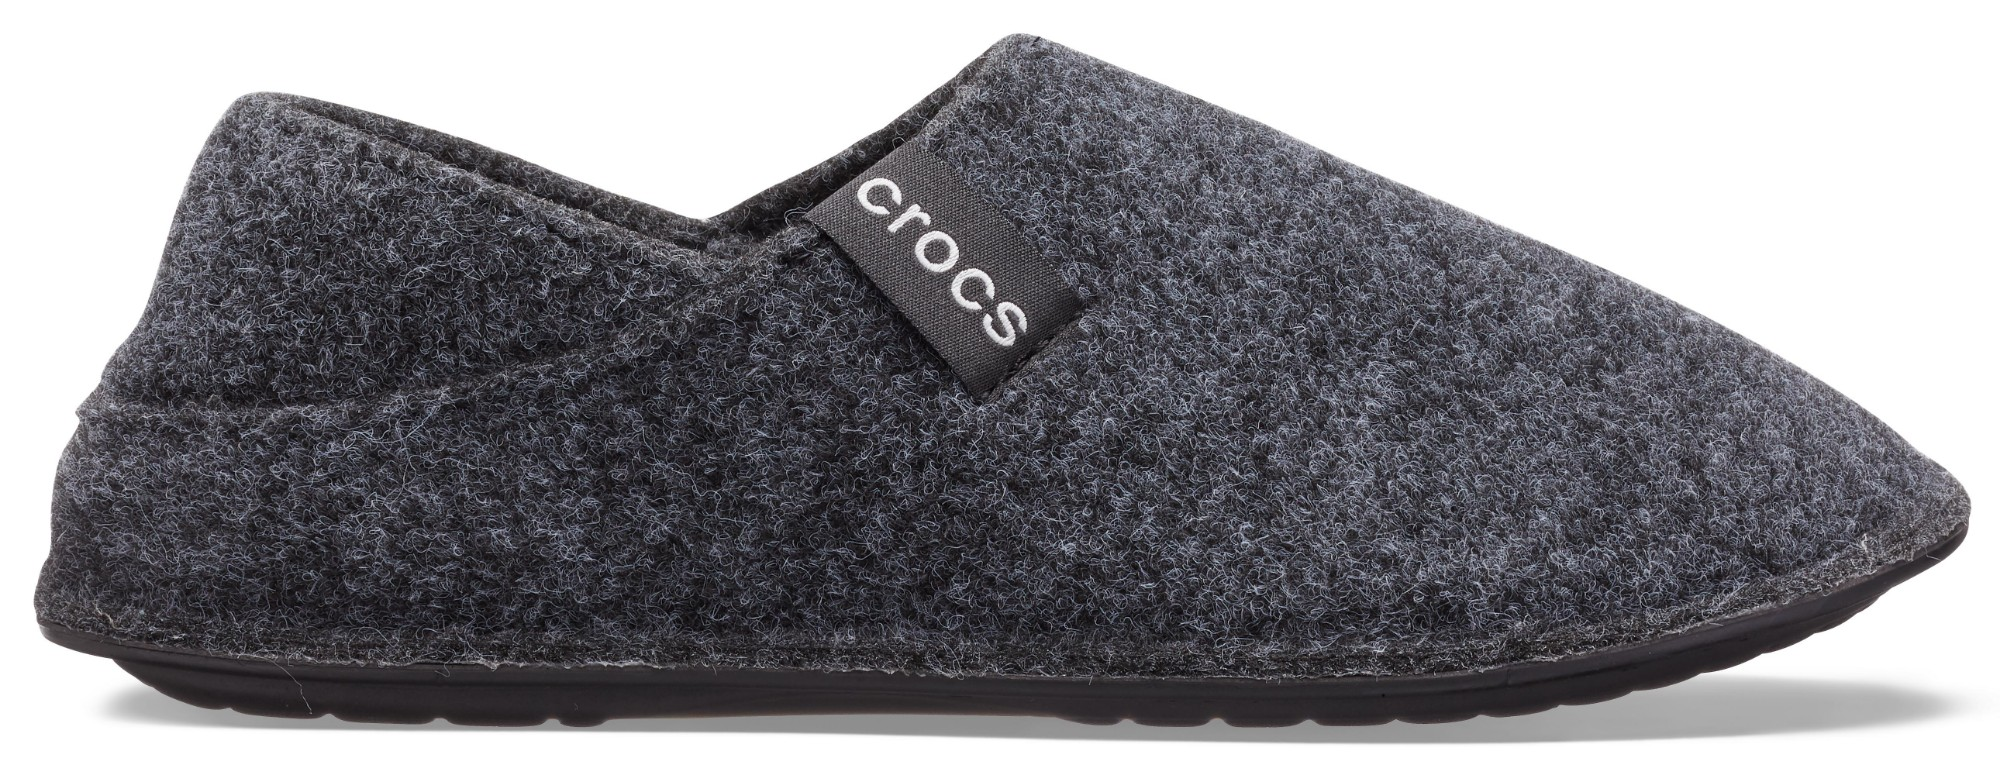 Crocs™ Classic Convertible Slipper Black/Black 39,5